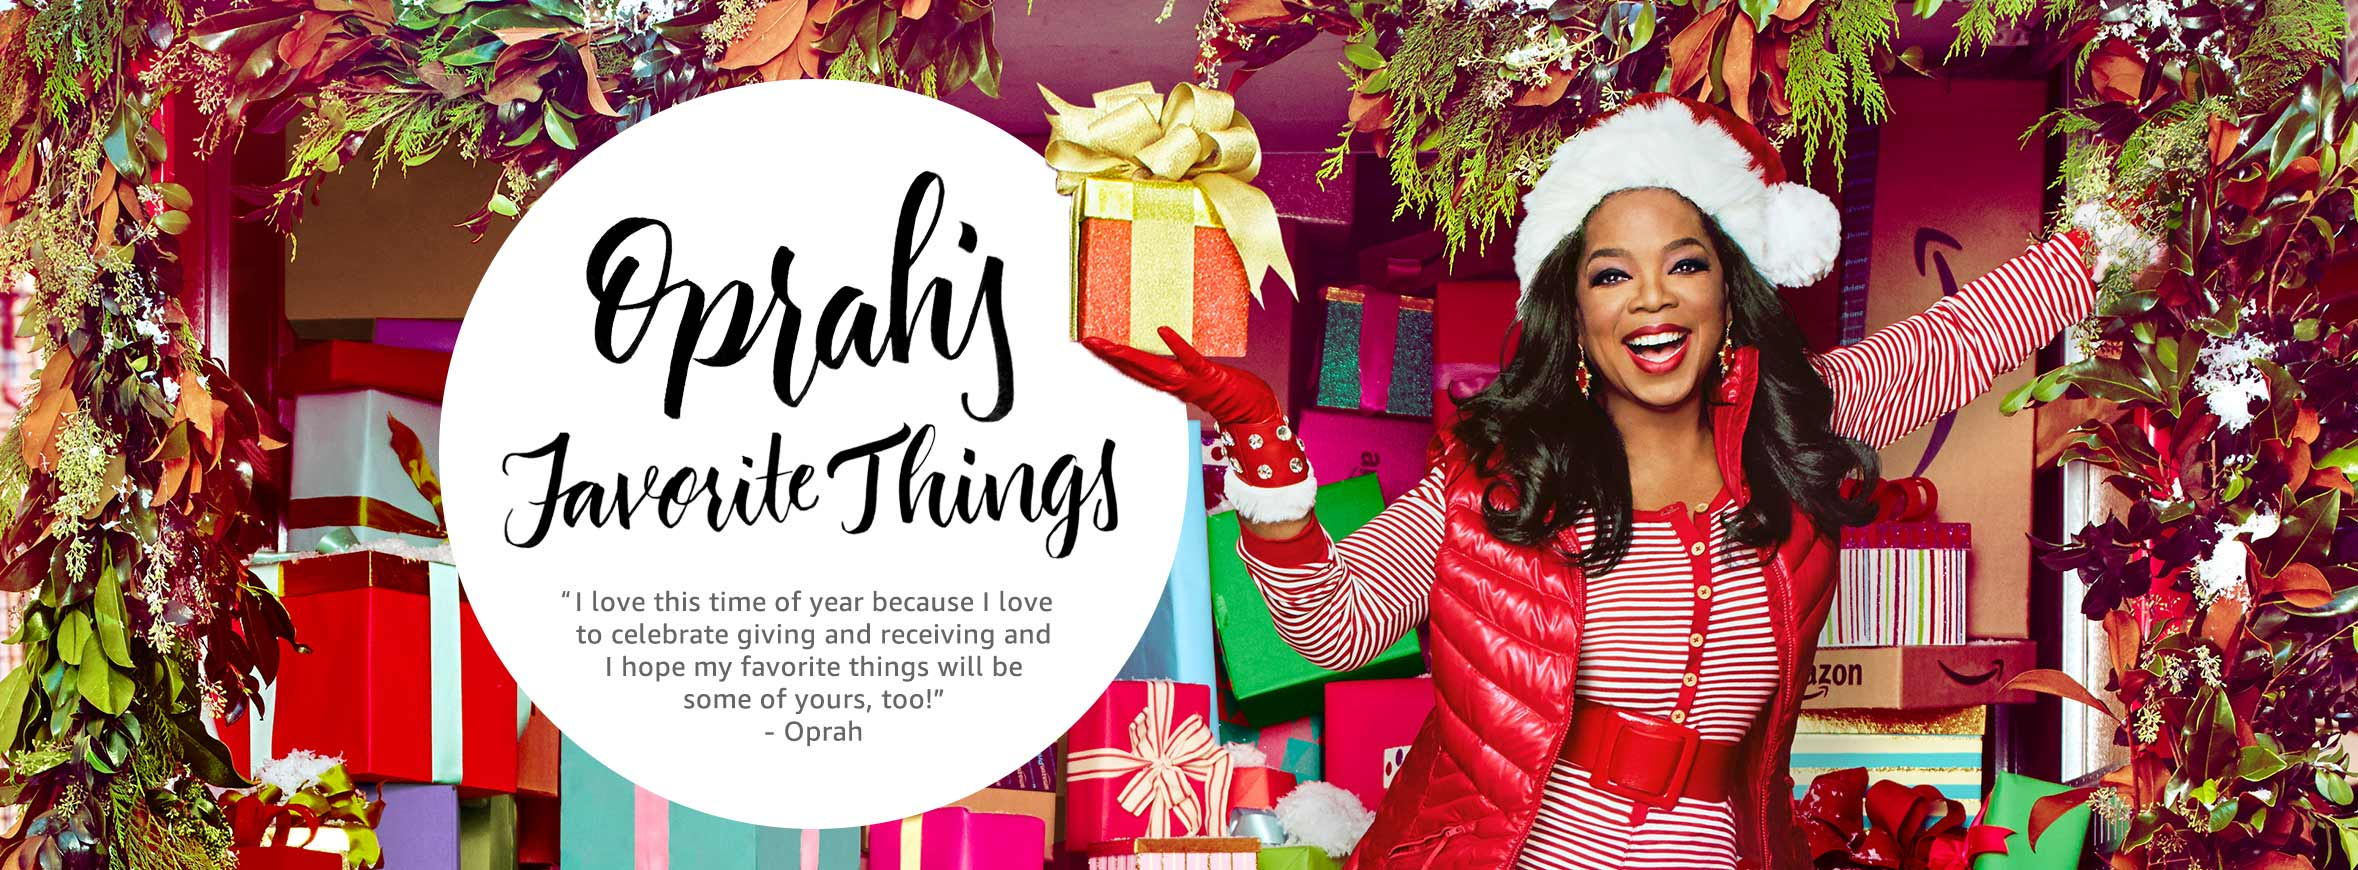 Oprah's Favorite Things List for 2016! A great source for gift ideas....and things you might need too!